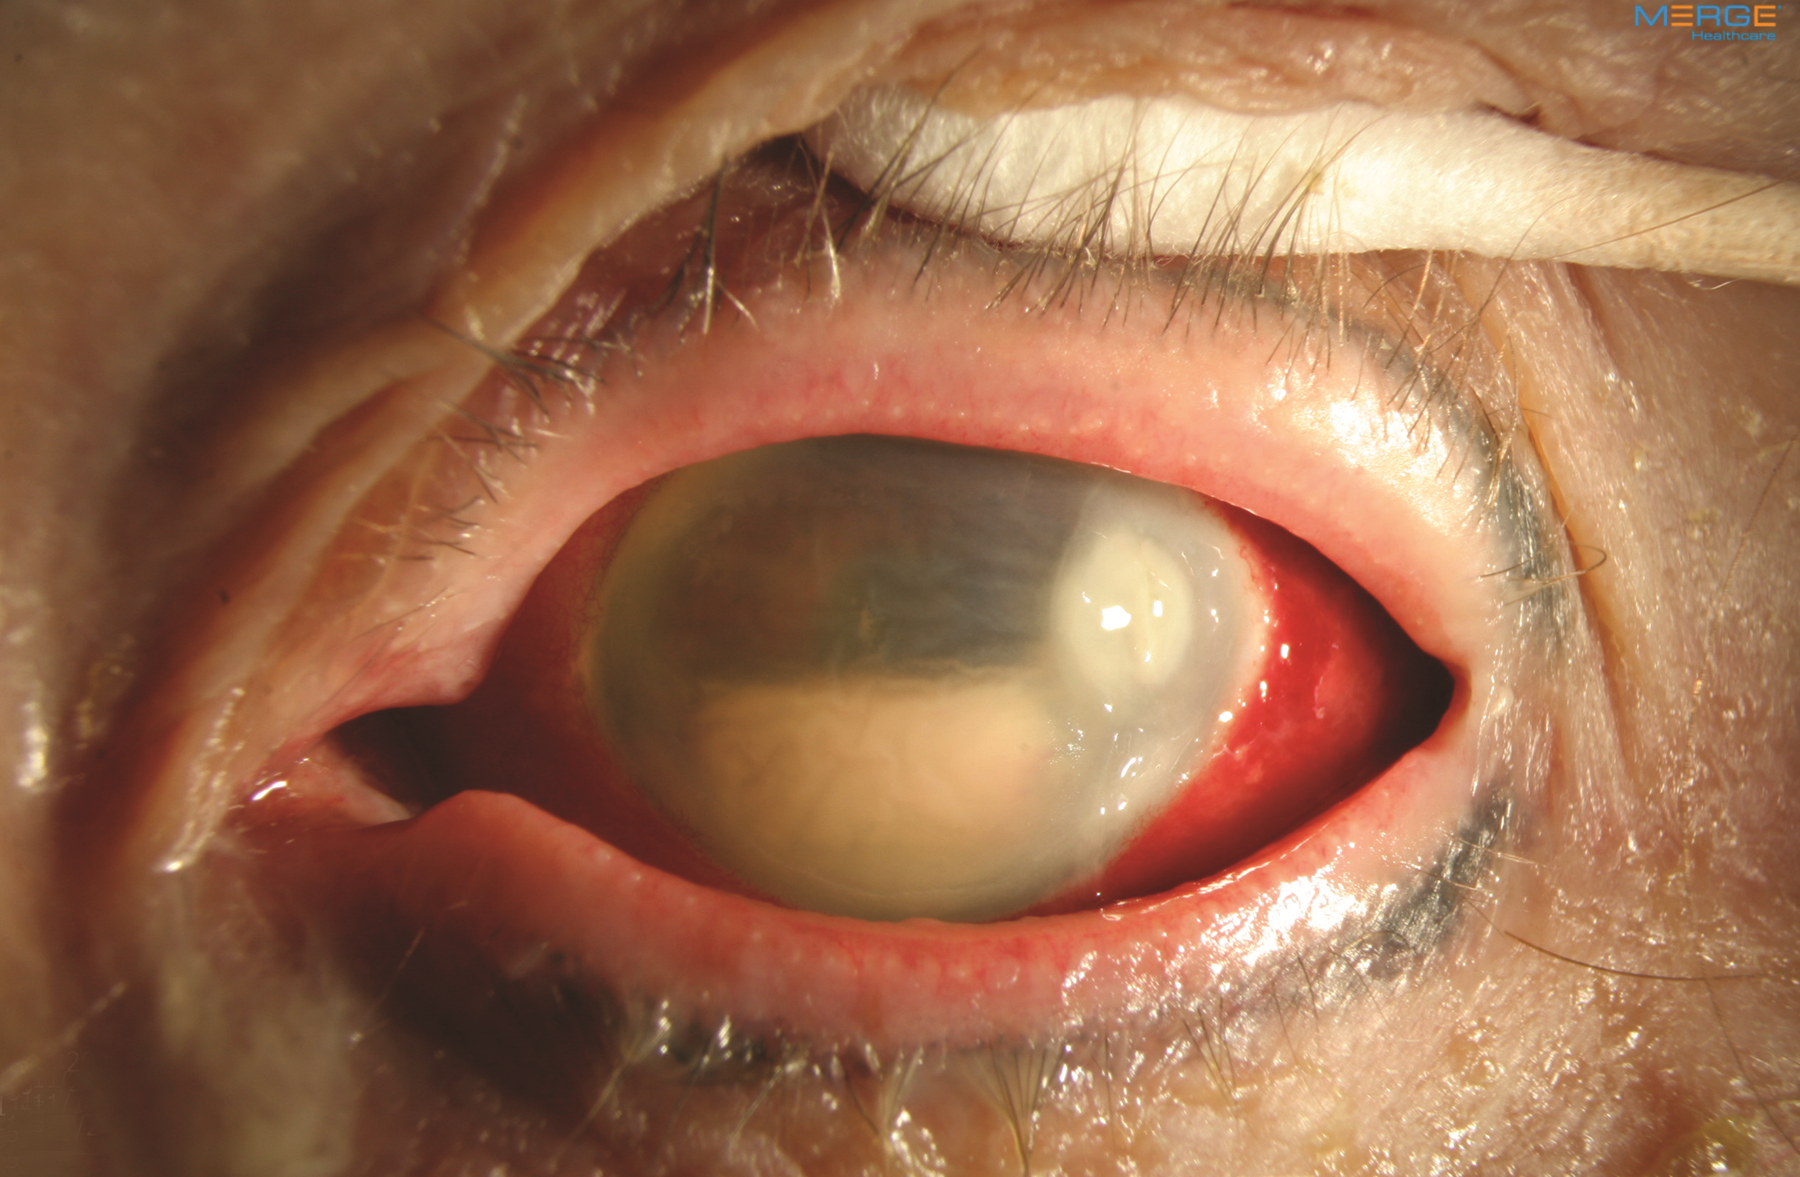 Figure 1. Hypopyon is an accumulation of white blood cells in the anterior chamber of the eye and corneal infiltrate associated with infectious endophthalmitis. Image courtesy of ©Retina Image Bank, contributed by Aleksandra V. Rachitskay, MD, Cole Eye Institute, Cleveland Clinic. 2014. Image 16250.